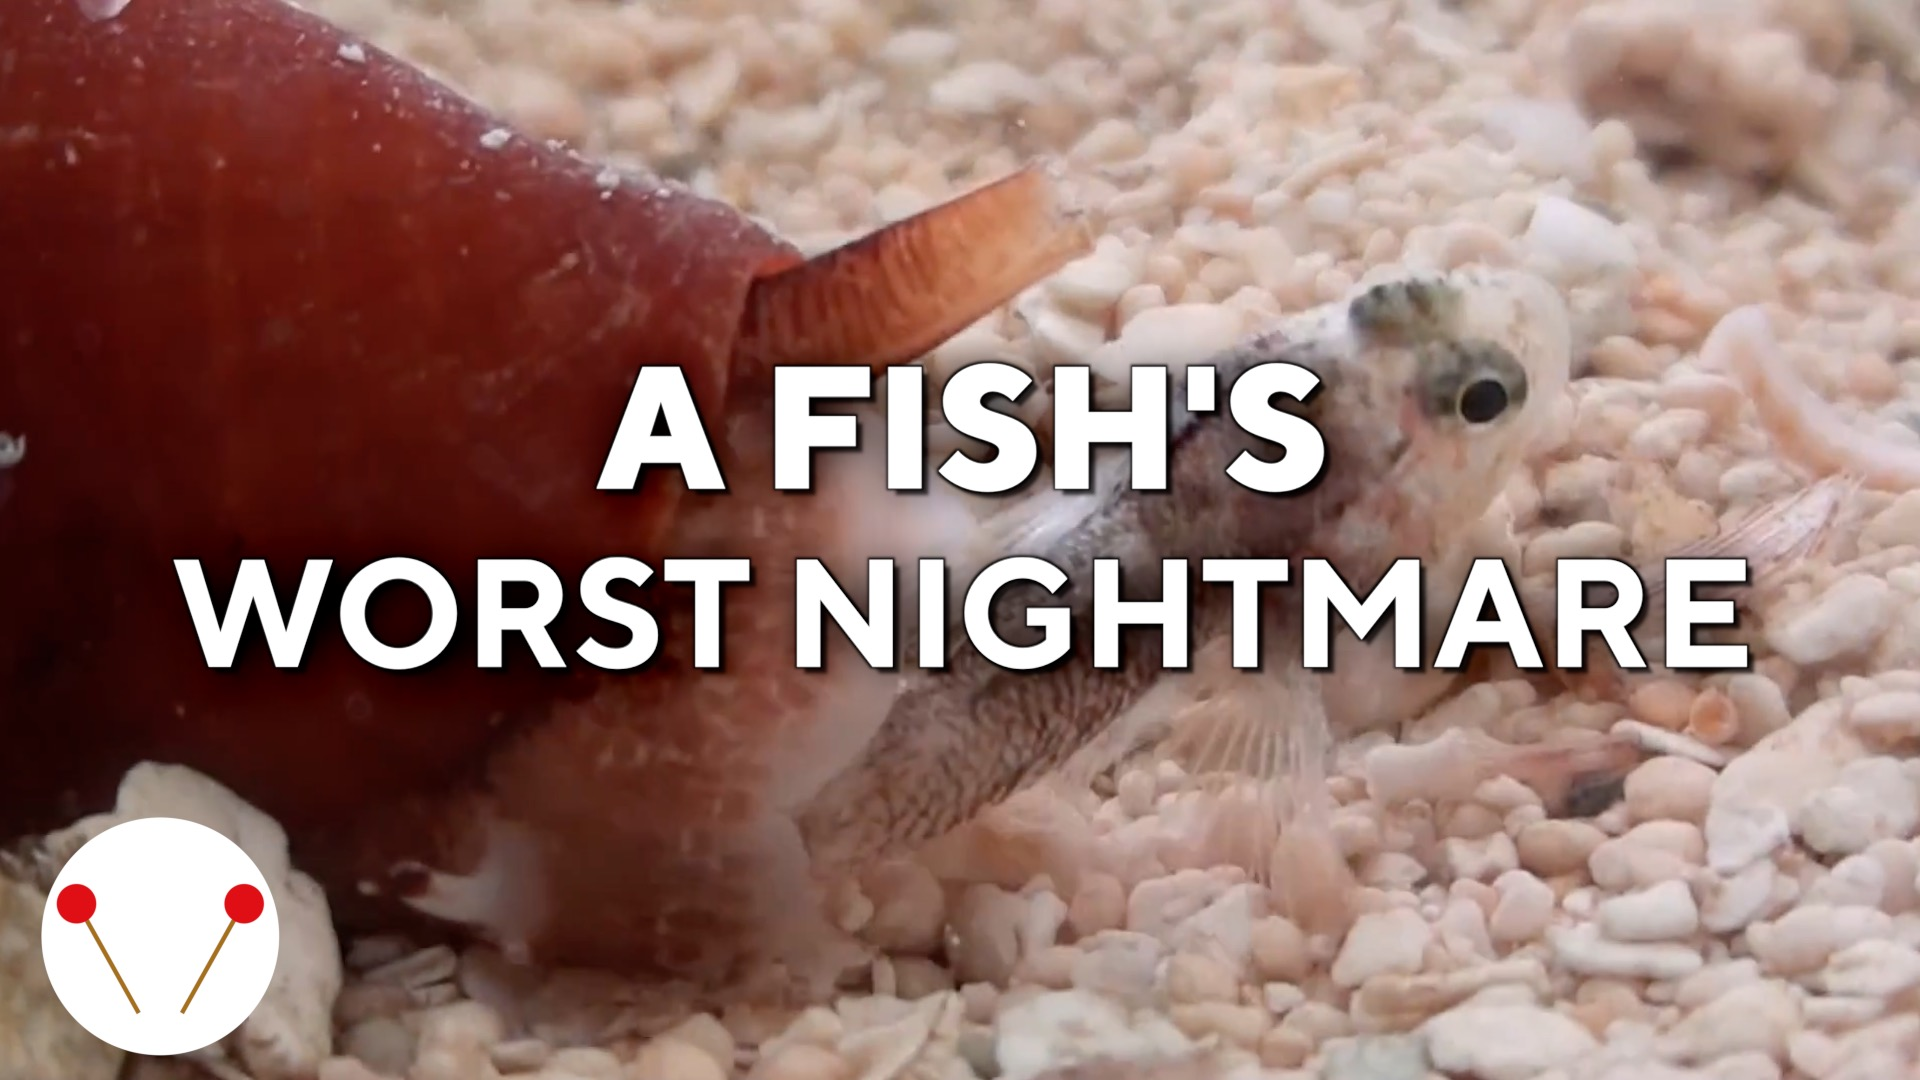 This cone snail is a fish's worst nightmare